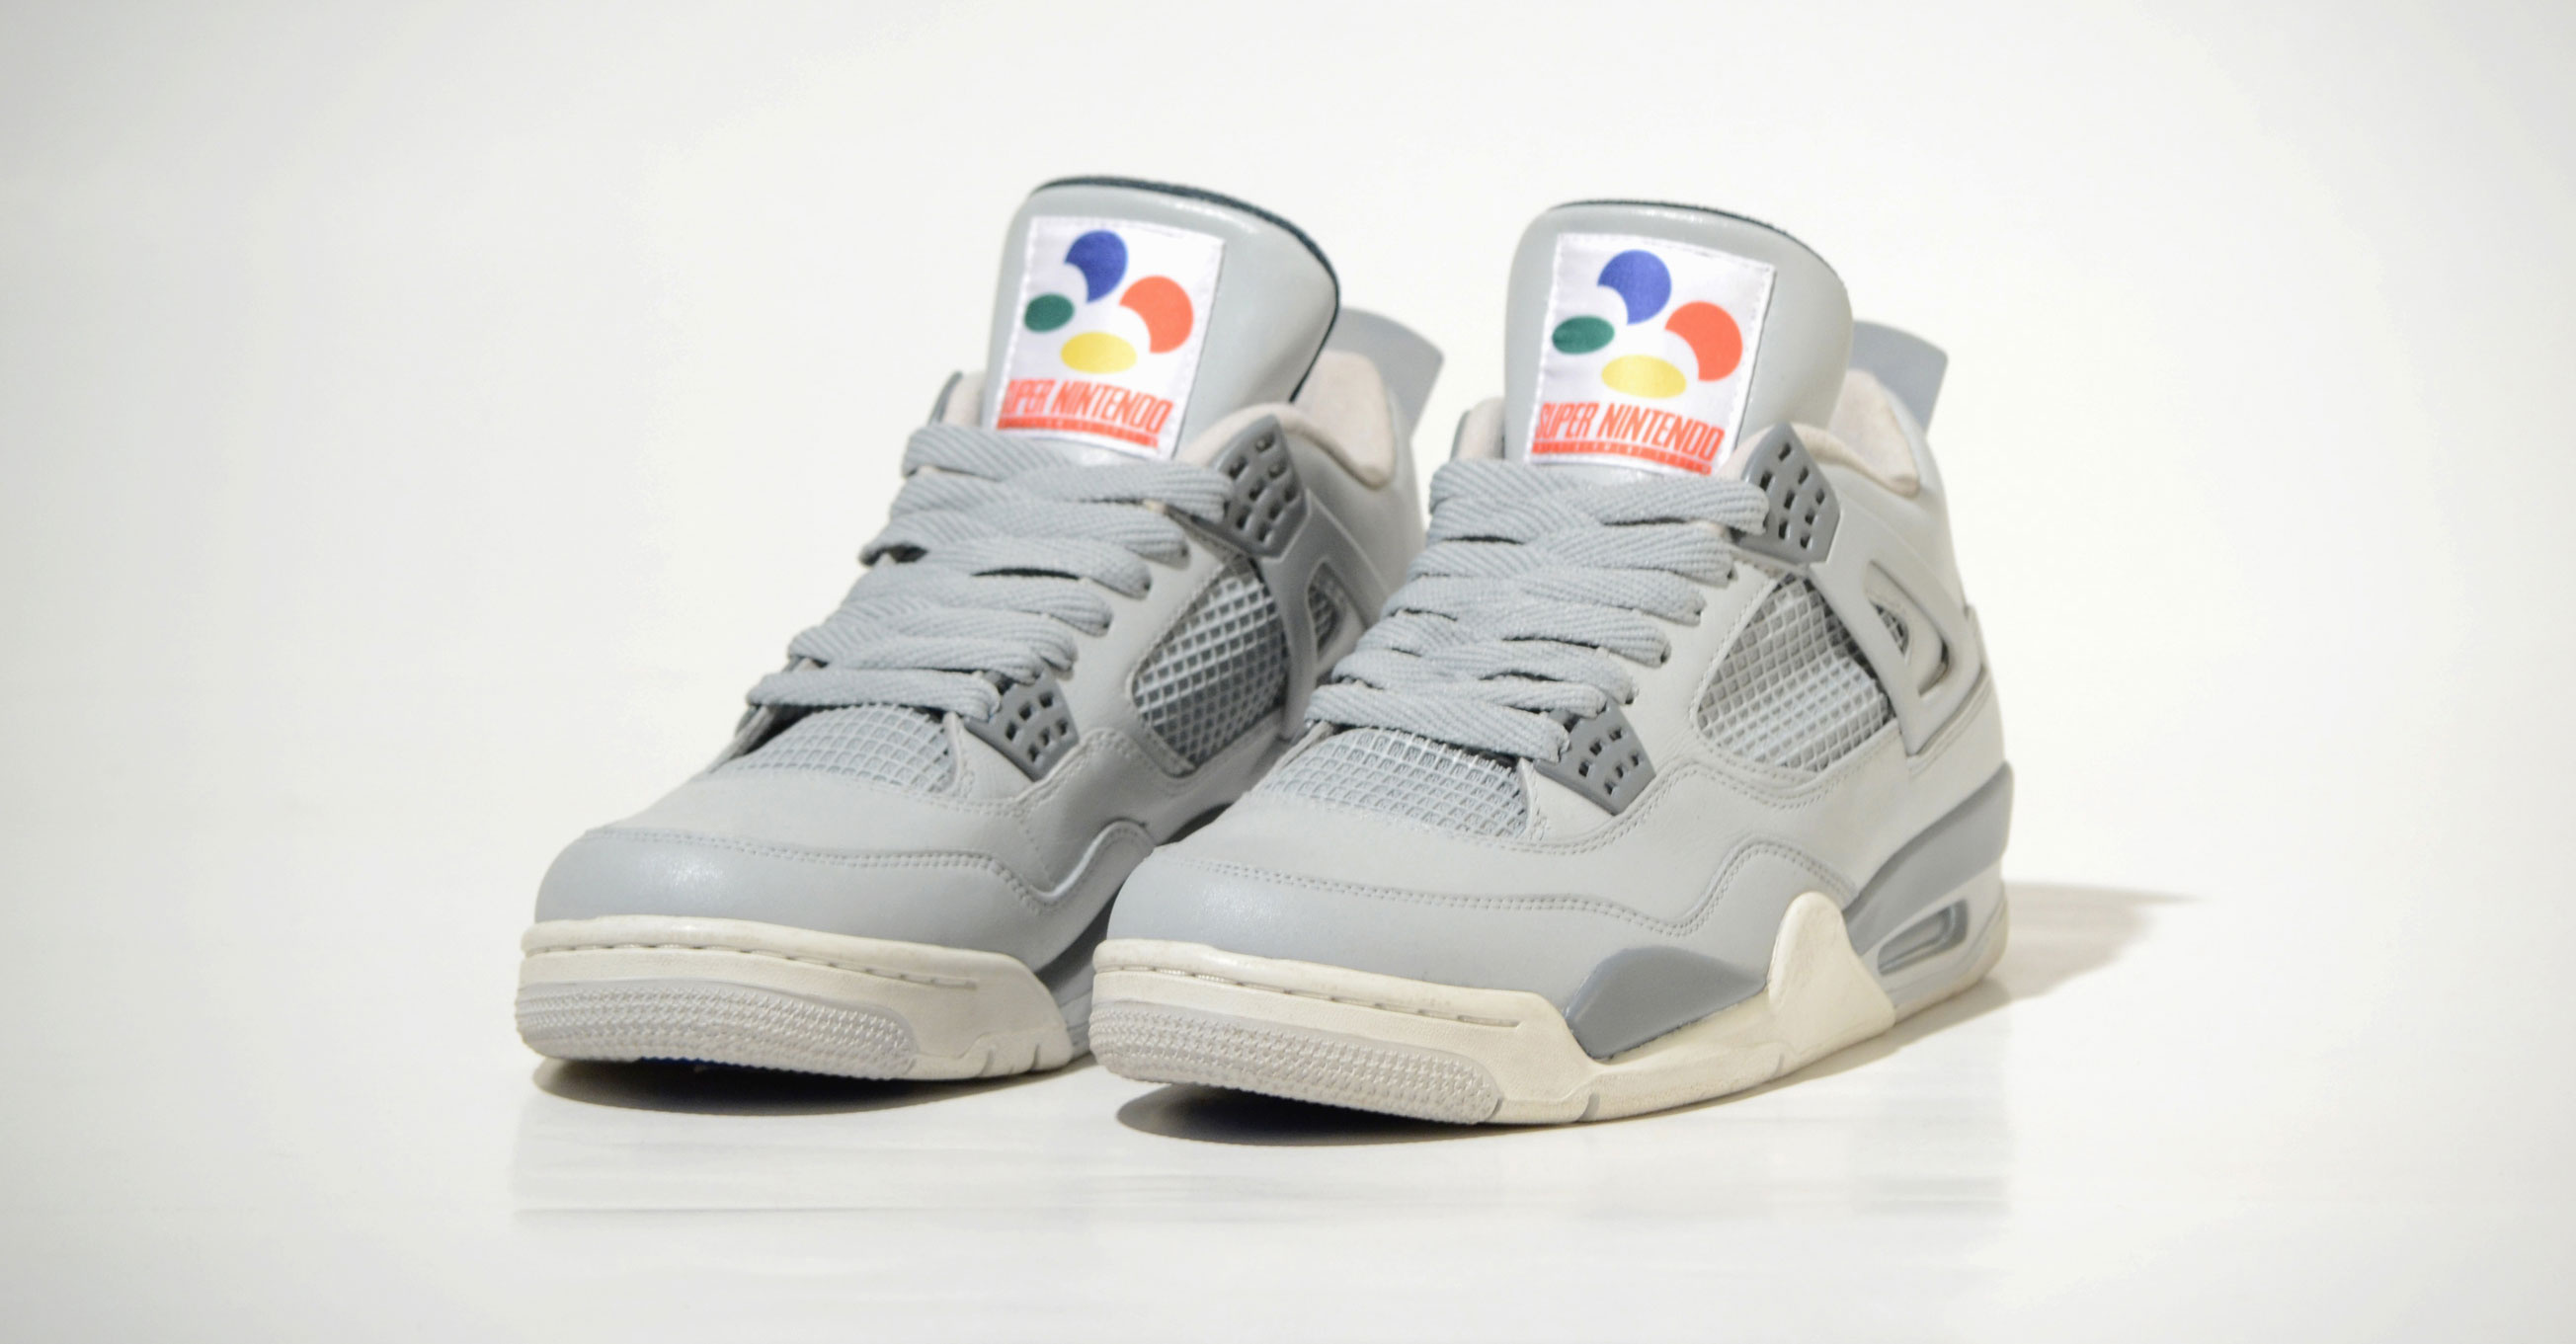 74200bdd450bc8 SNES Shoes 2. The shoes you see above are called the Jordan